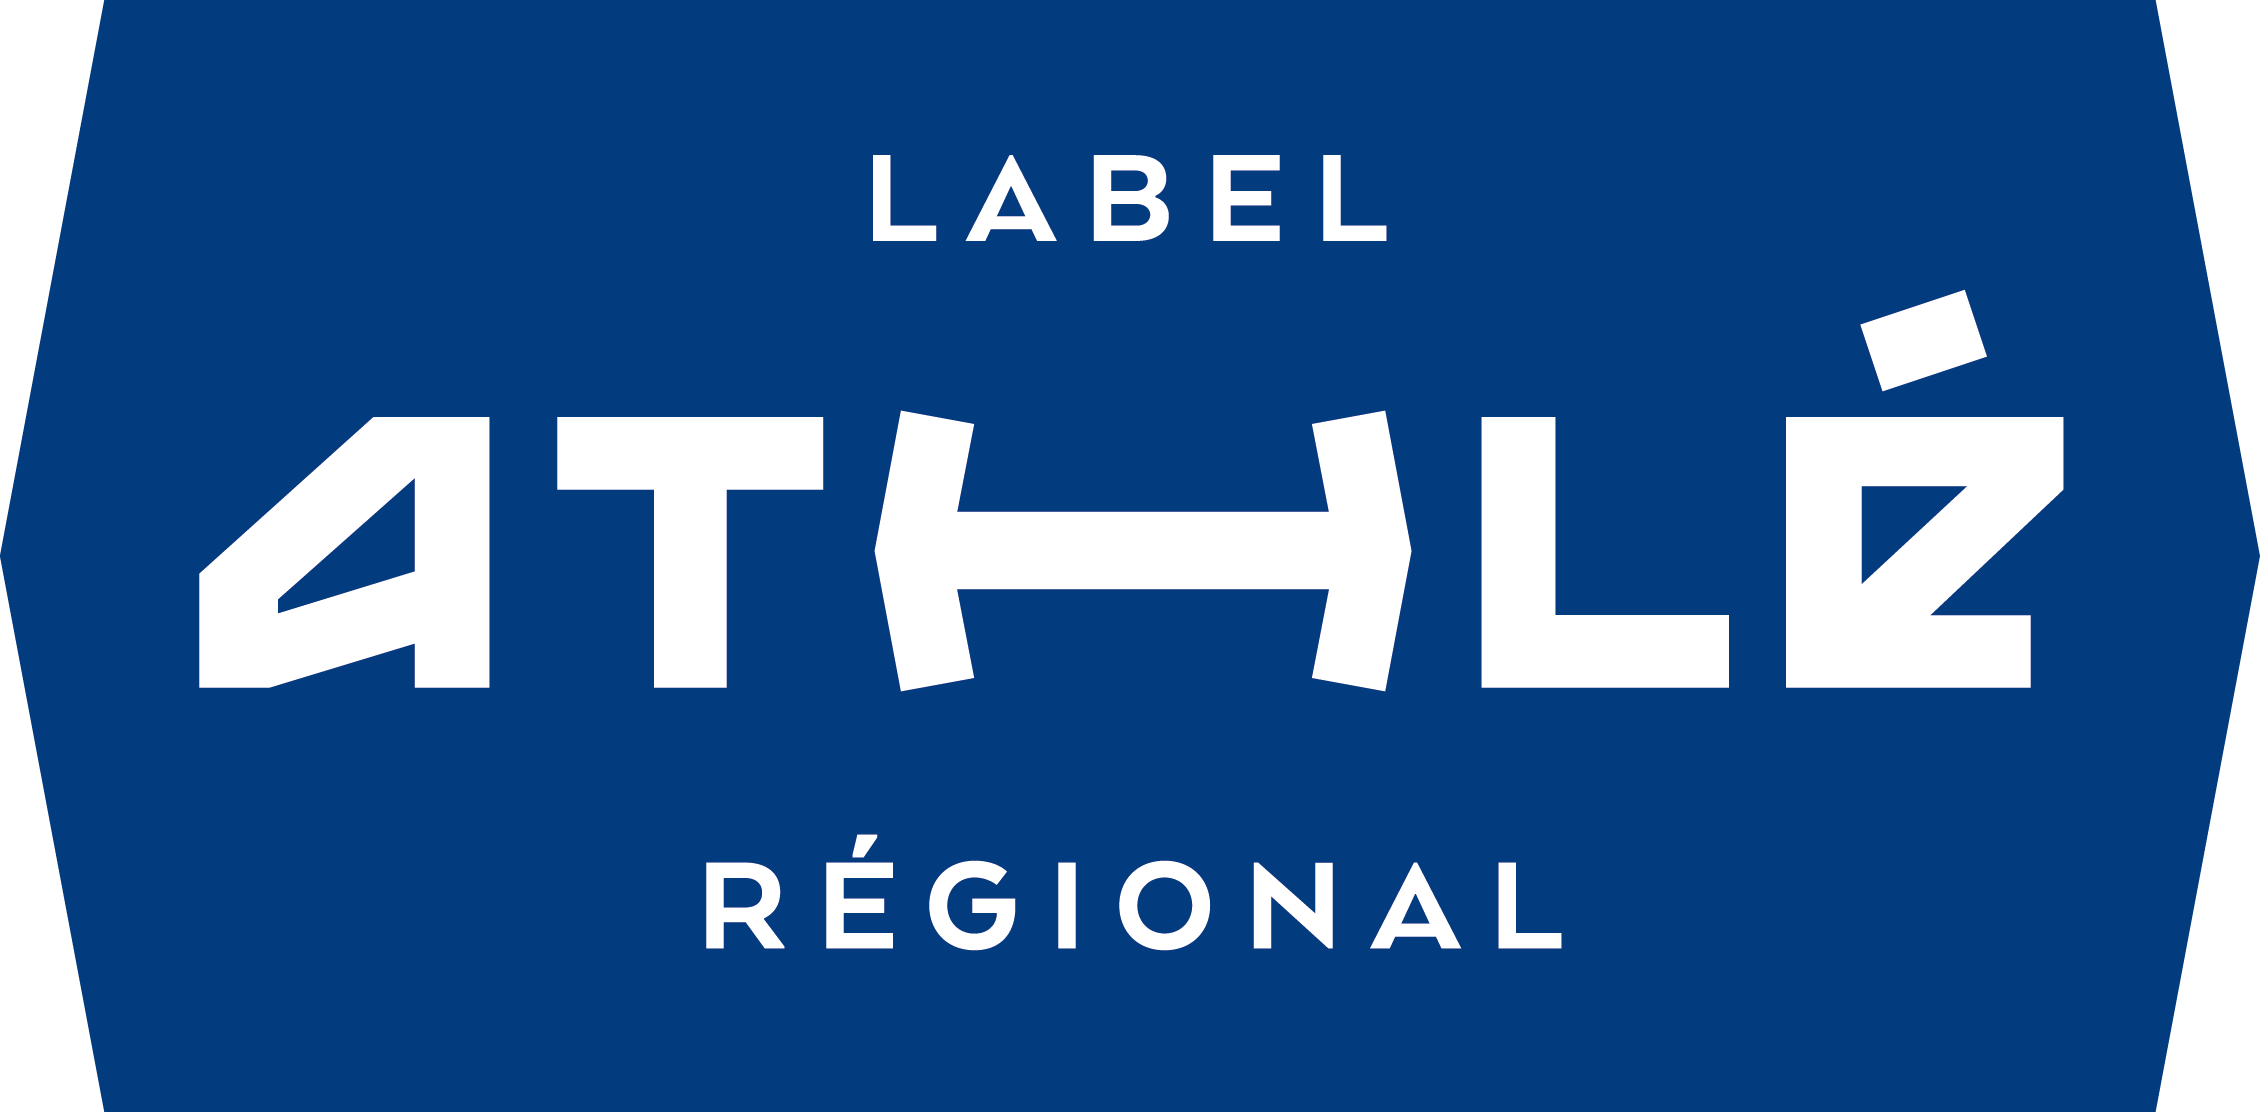 Label_Regional_ATHLE-Bleu.png